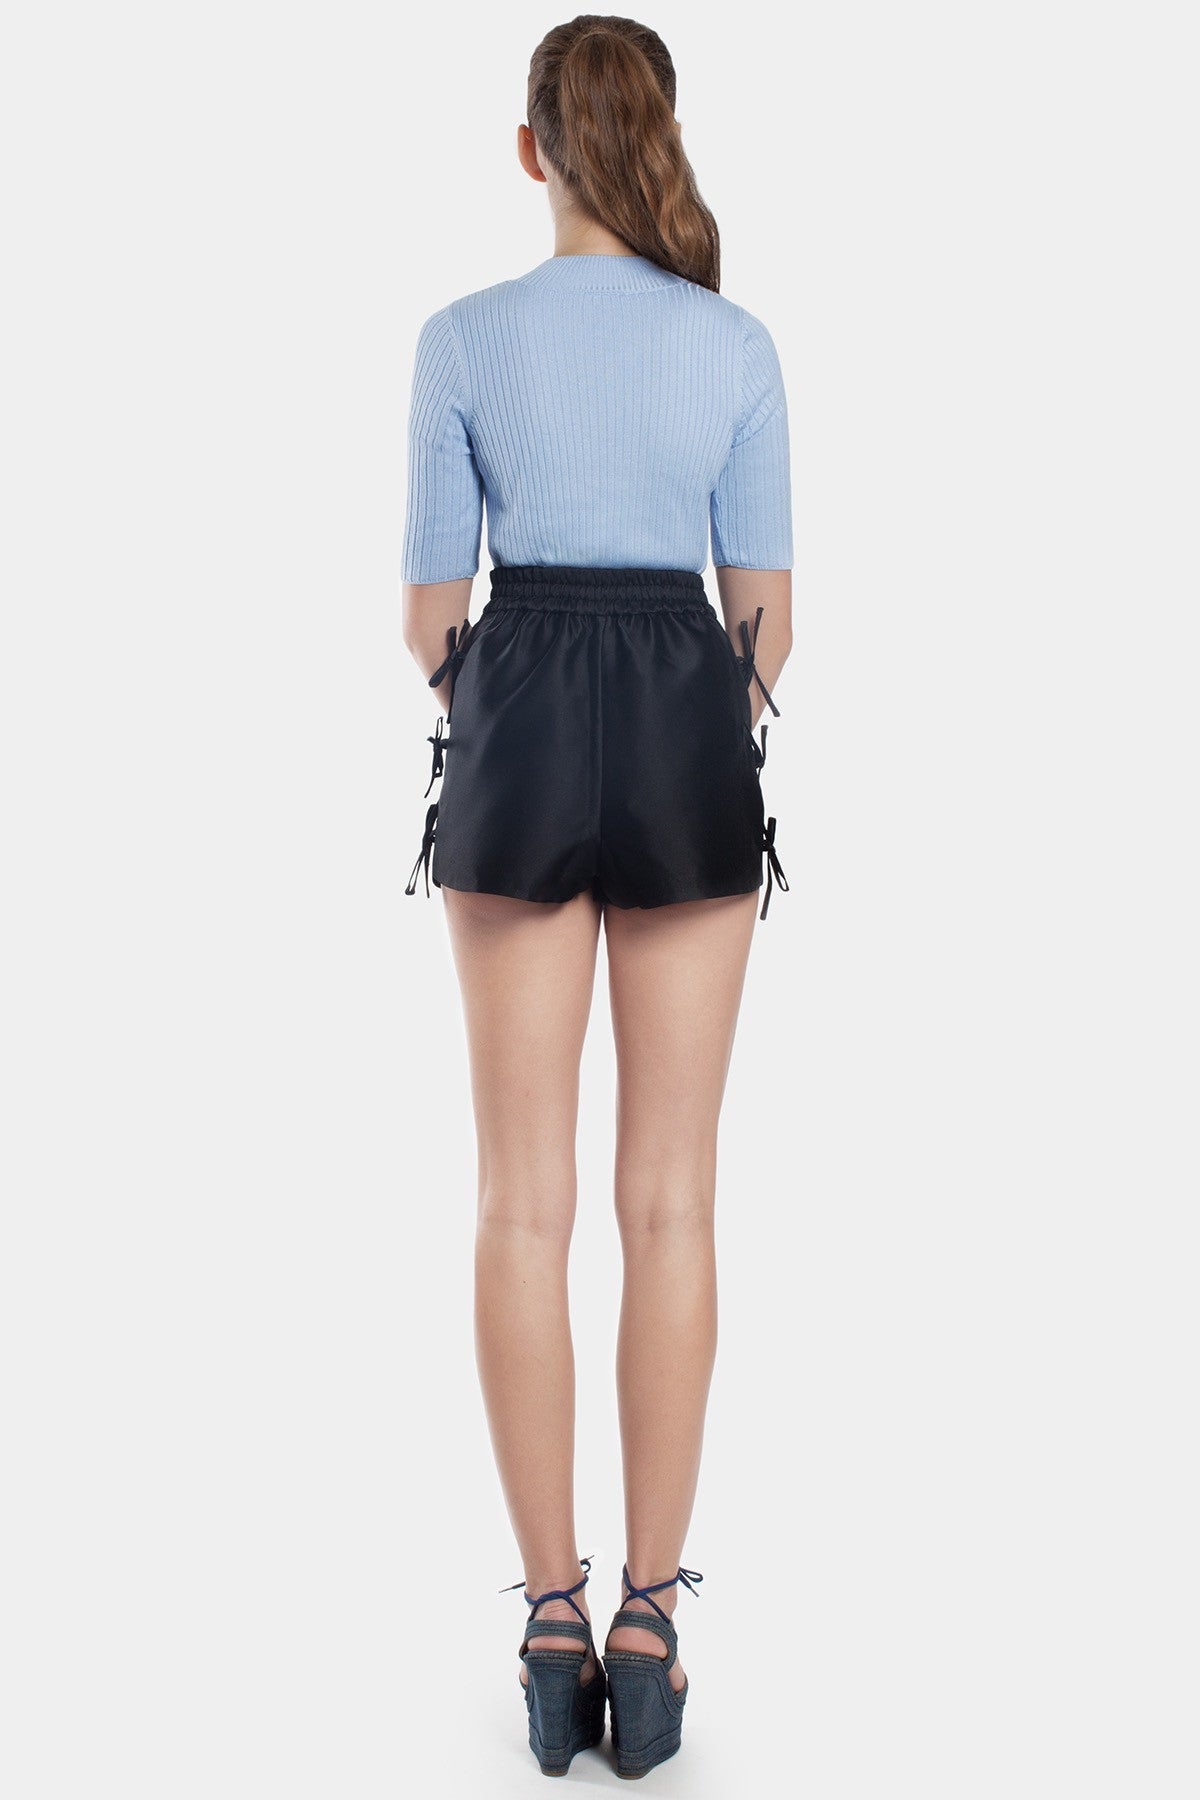 Revolution Bow Applique Shorts